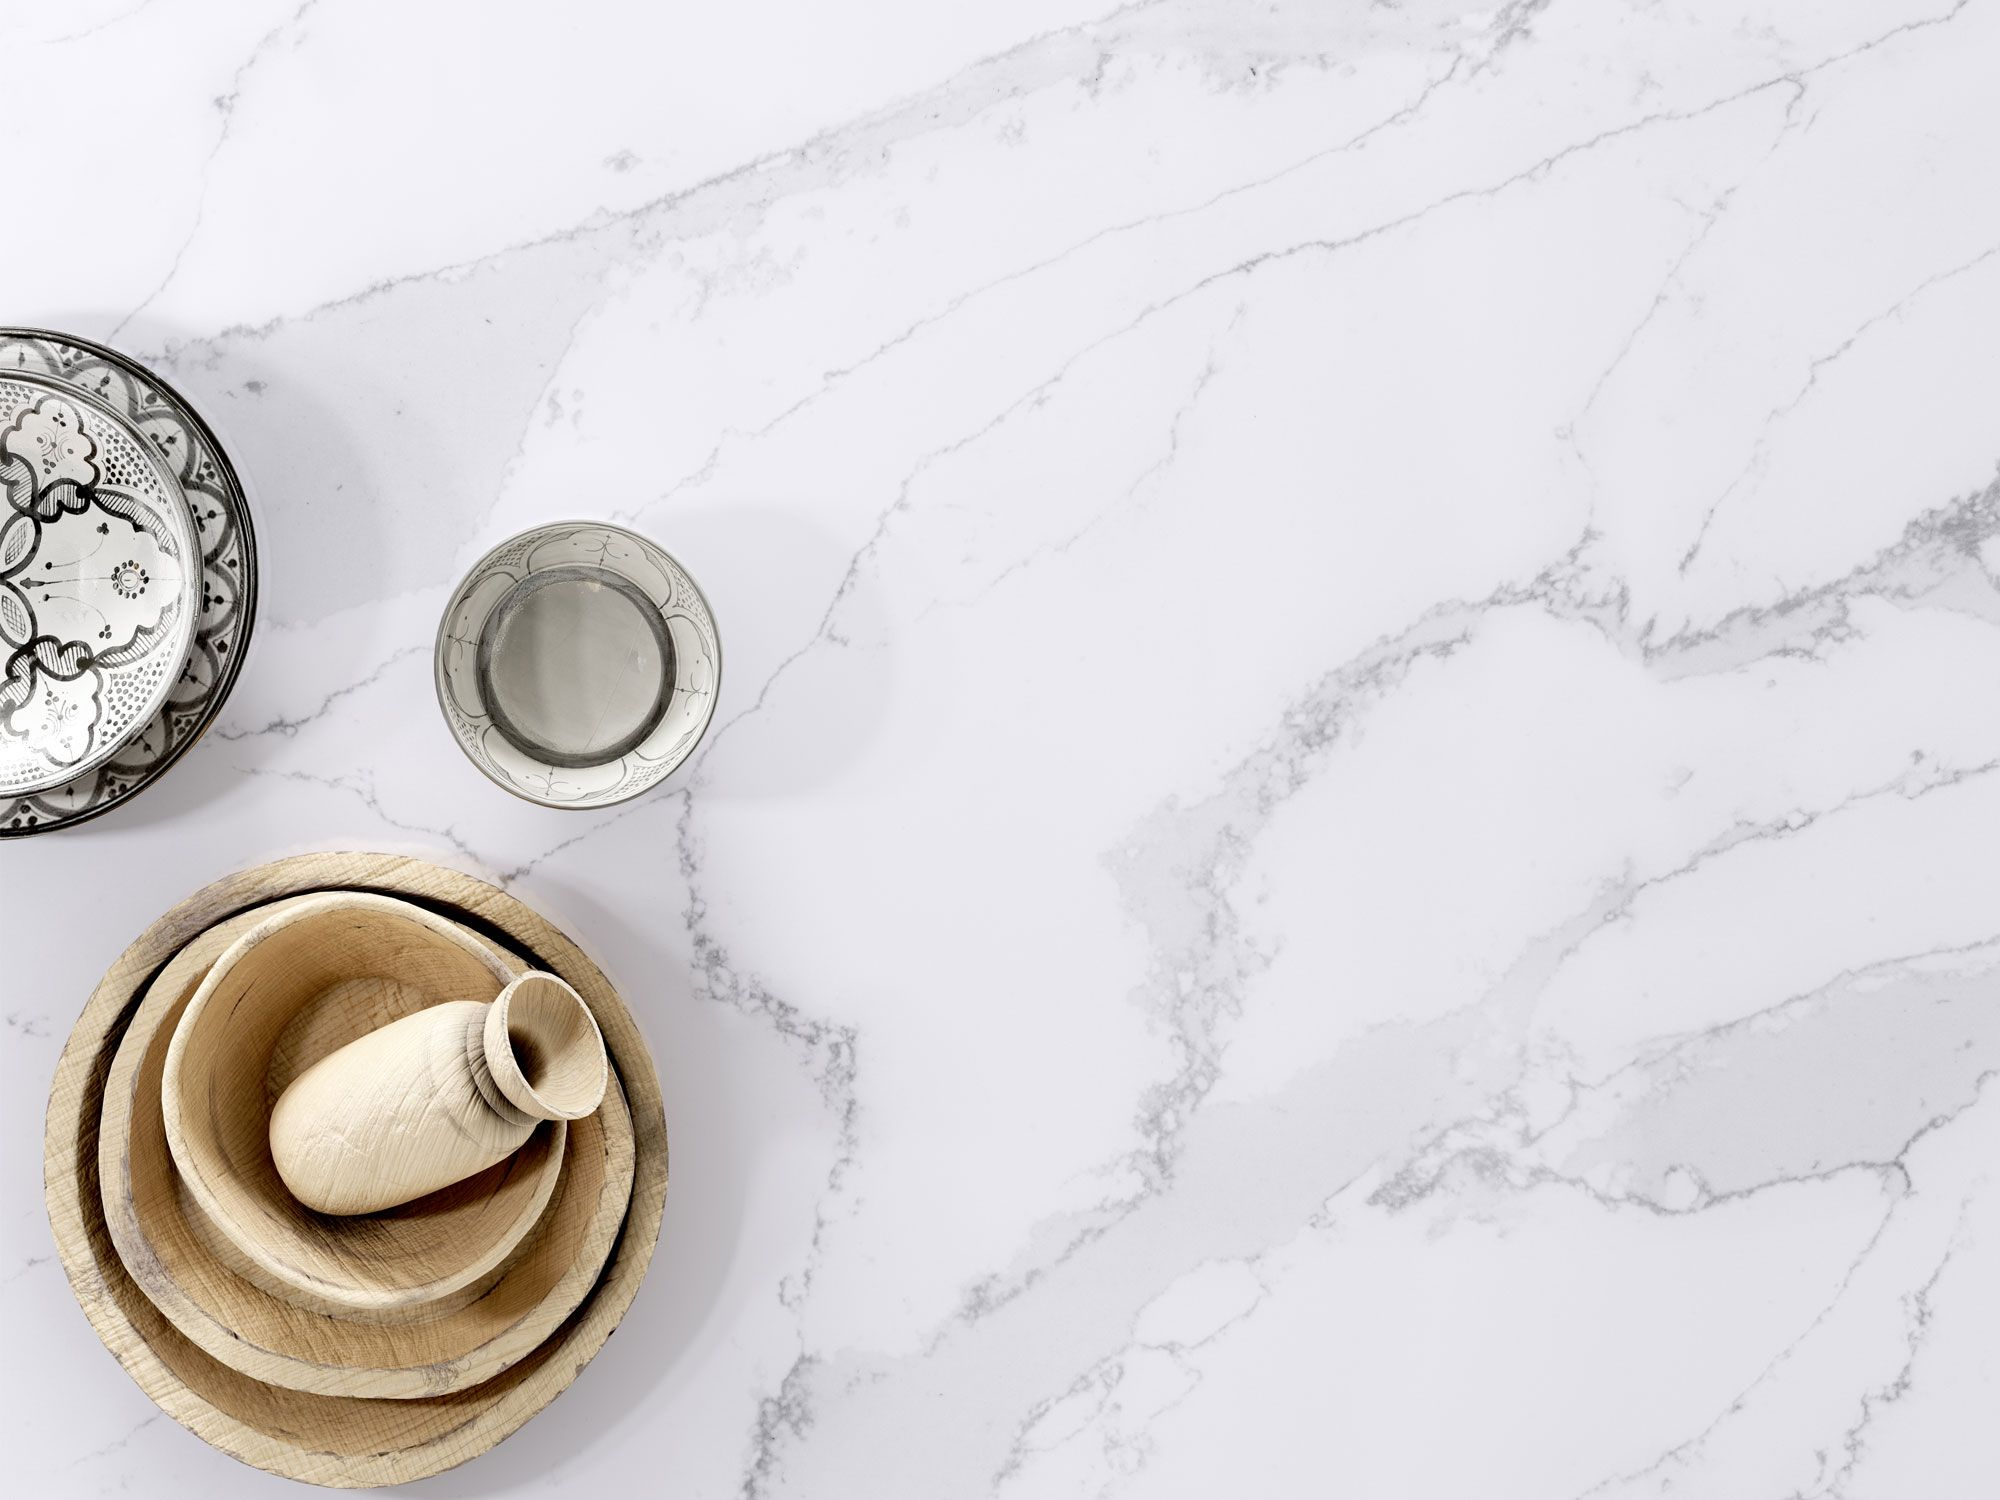 Manufacture, Distribution Of Marble And Quartz Surface Coverings For Kitchens,